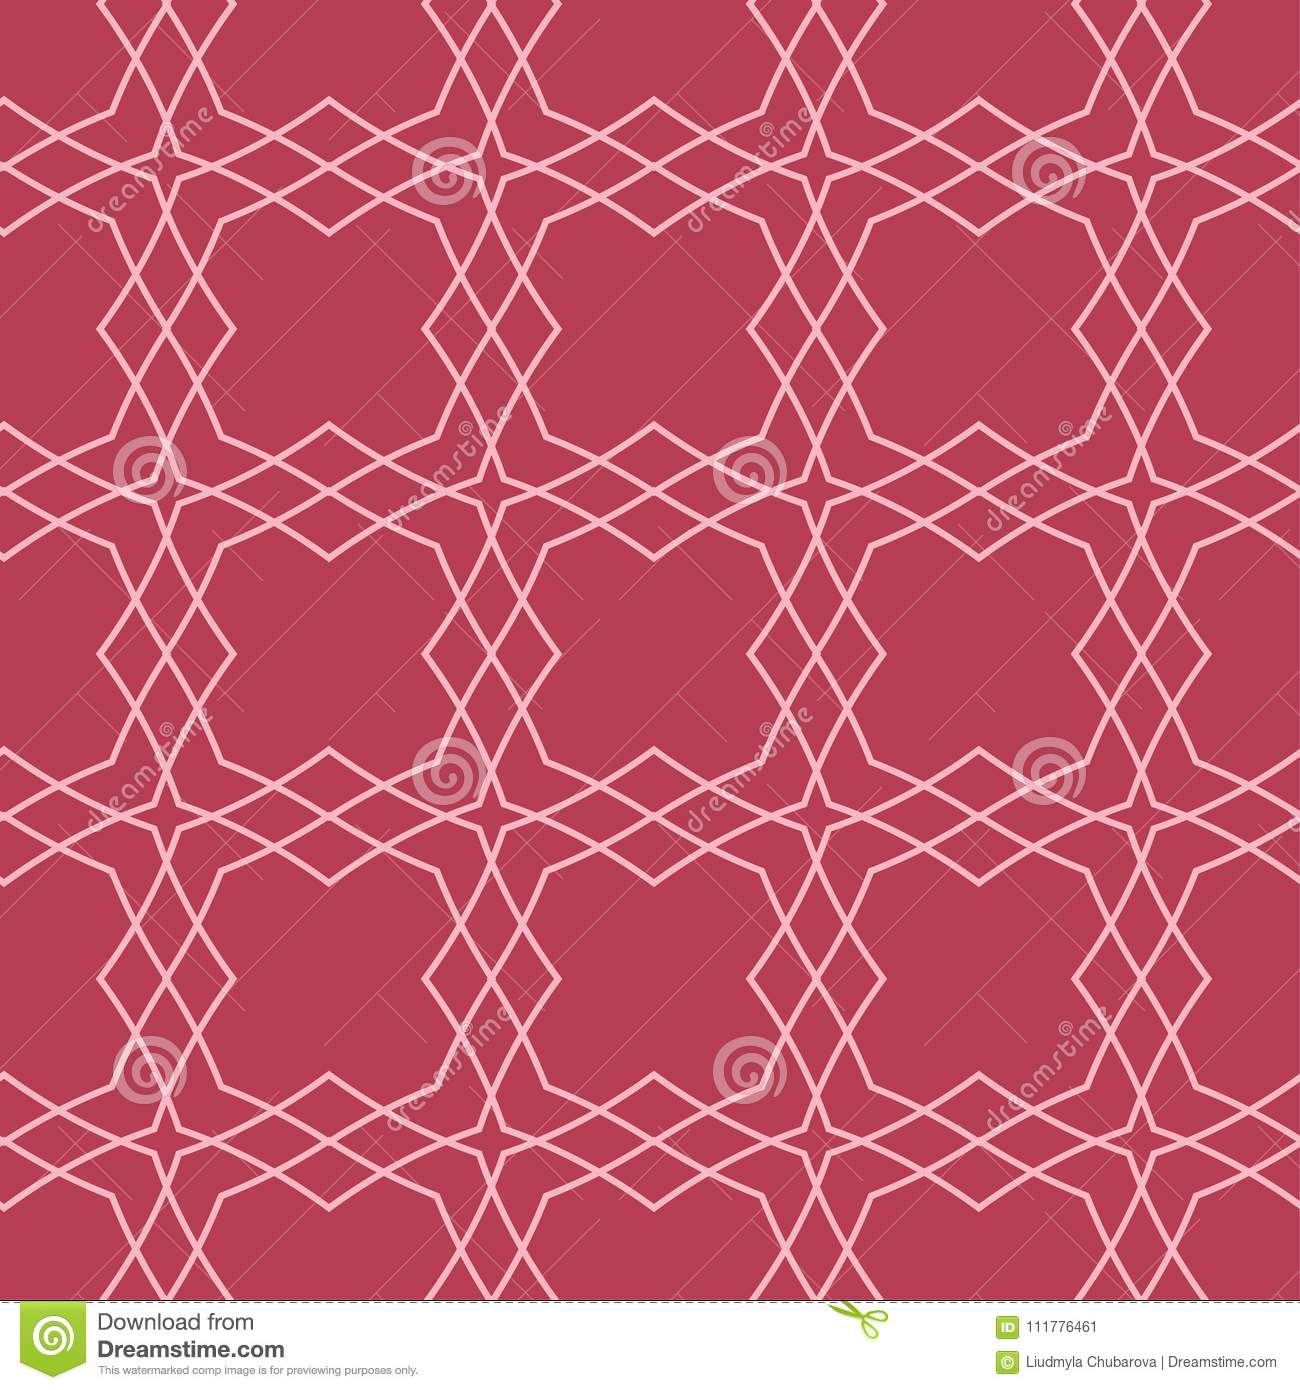 Red and pale pink geometric ornament. Seamless pattern